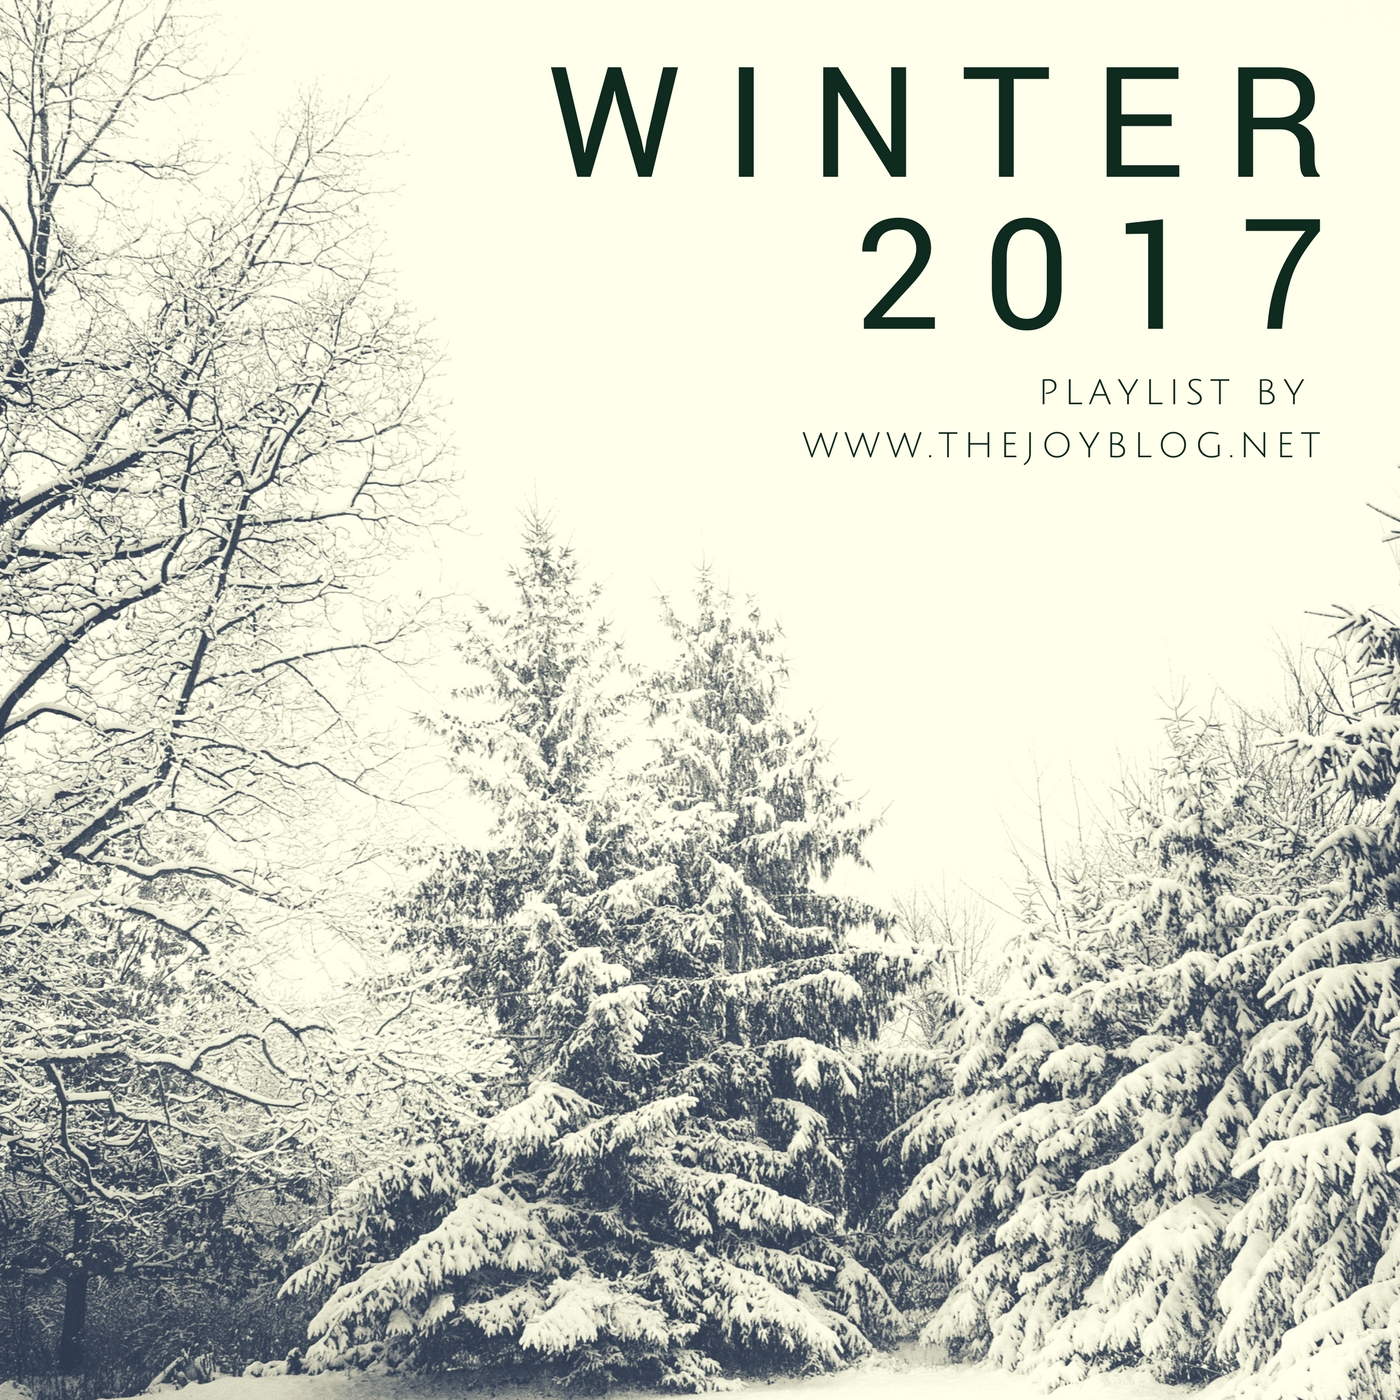 Winter 2017 Playlist // www.thejoyblog.net - a collection of music influenced by southern rock, oldies, country,  and bluegrass.